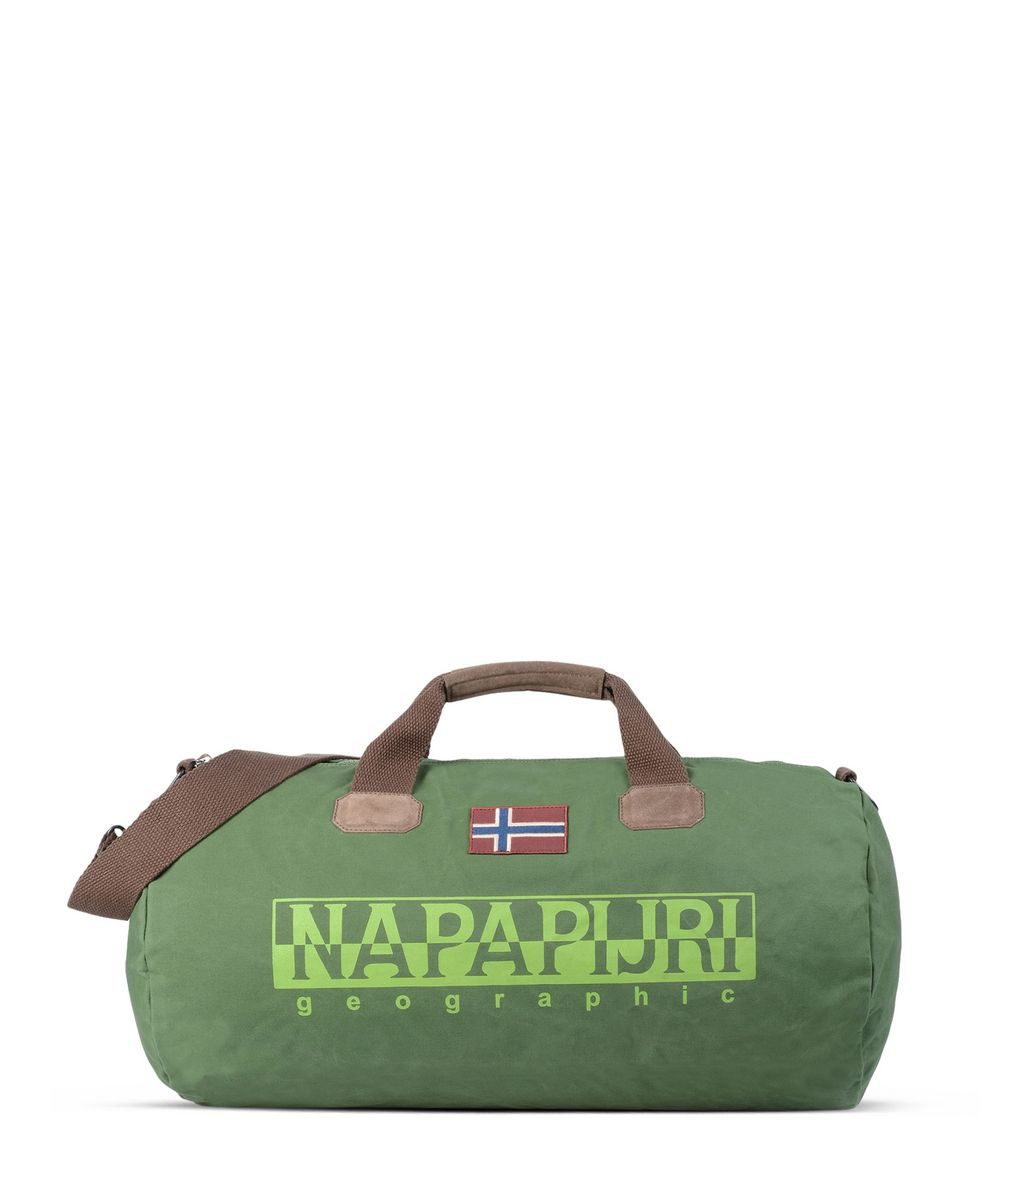 NAPAPIJRI BERING   TRAVEL BAG,GREENERY